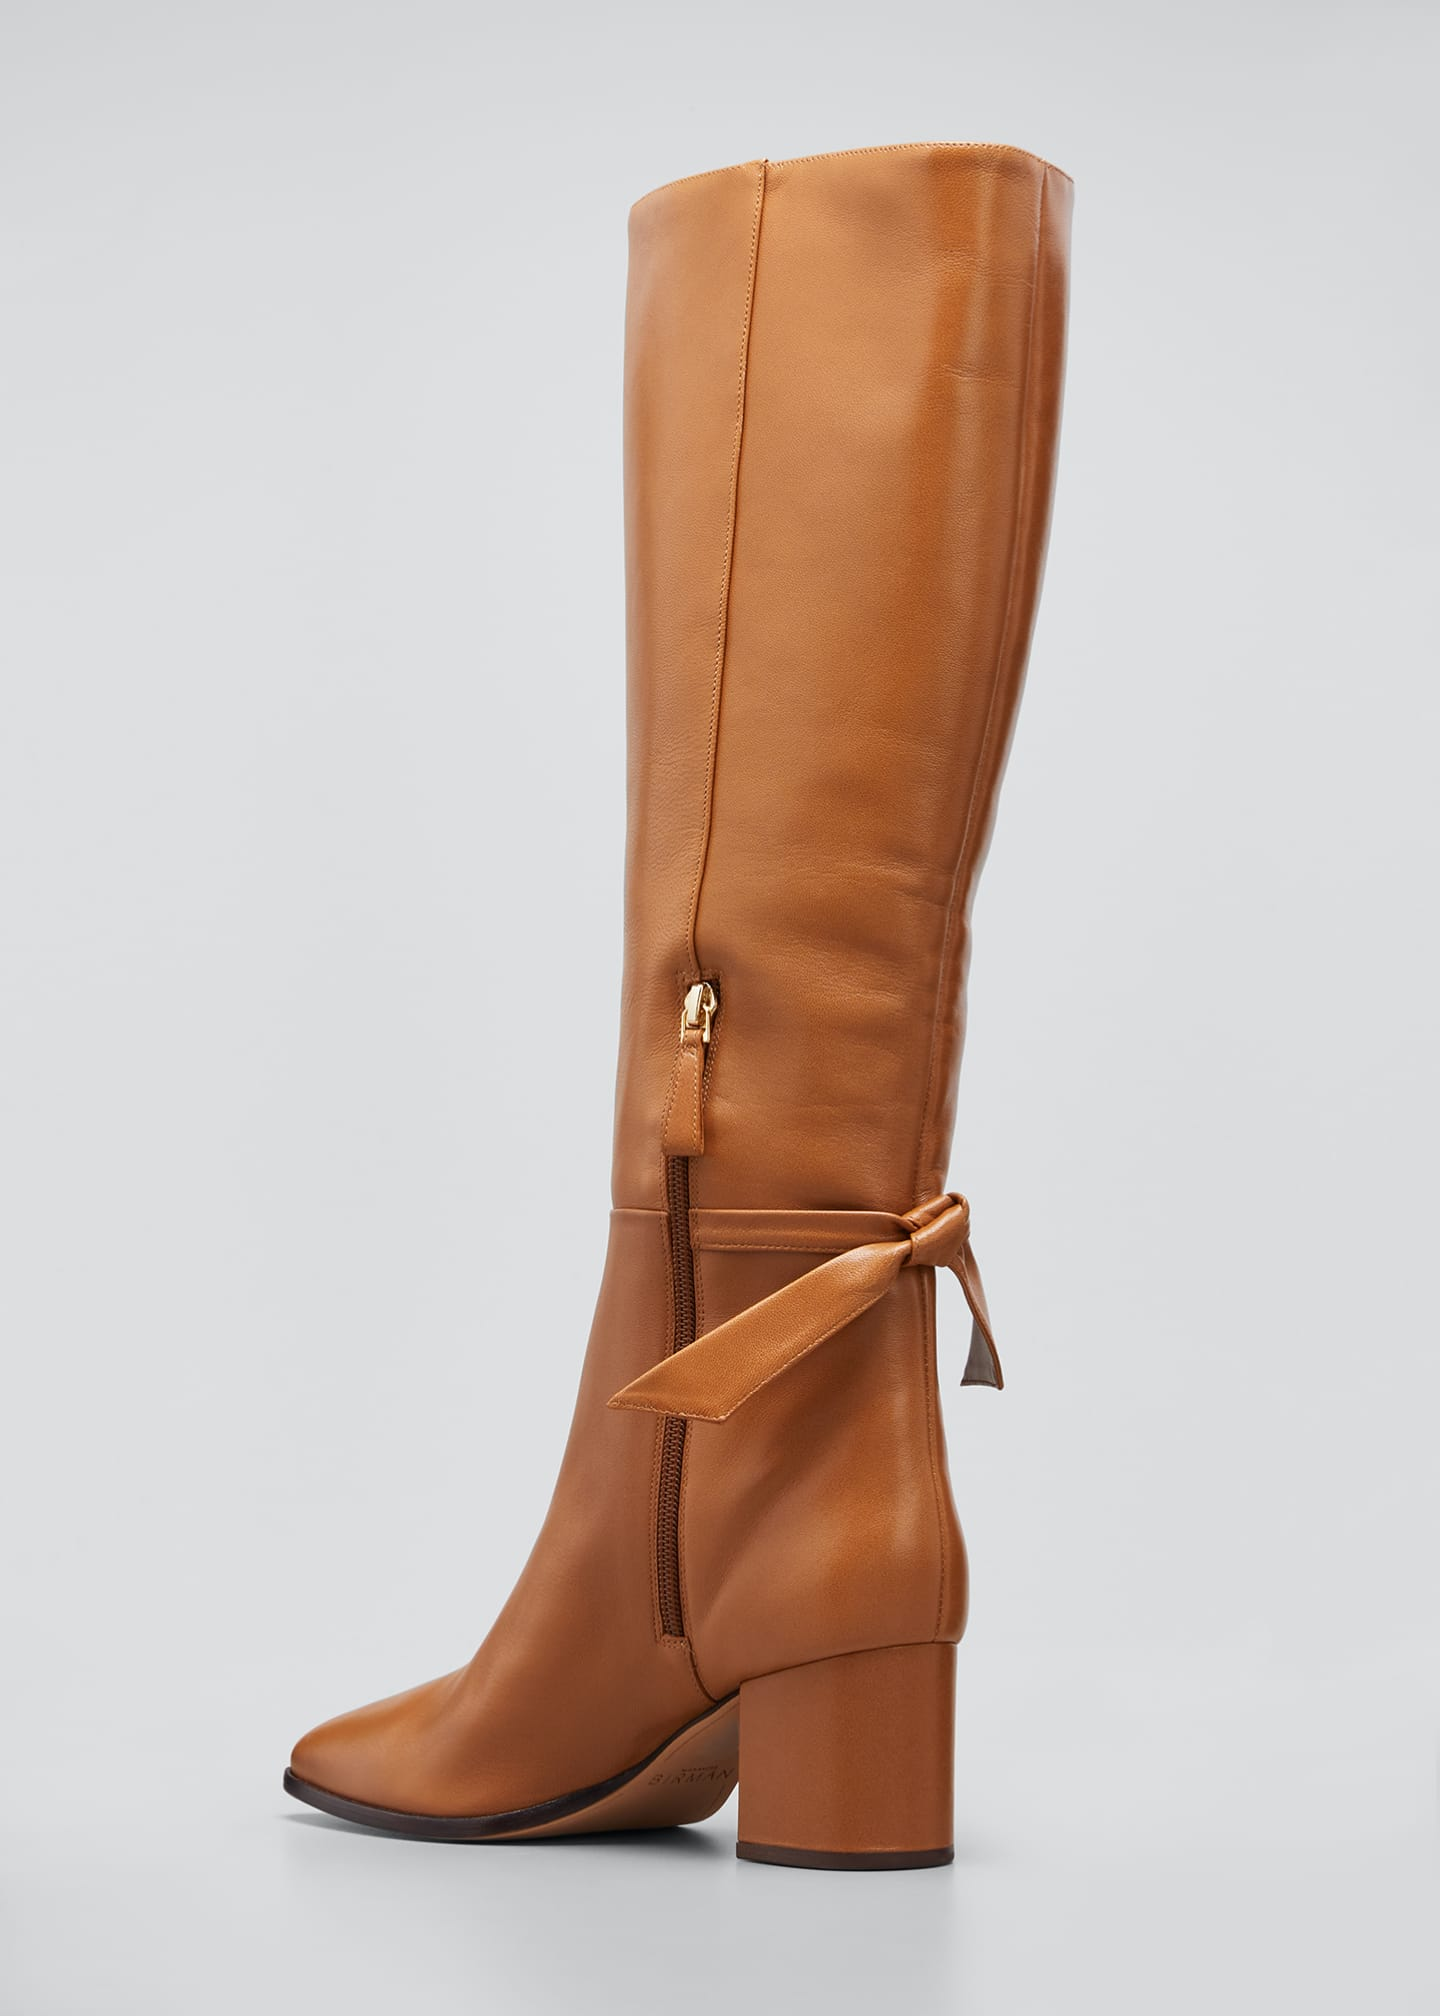 Image 4 of 5: Clarita Tall Leather Boots